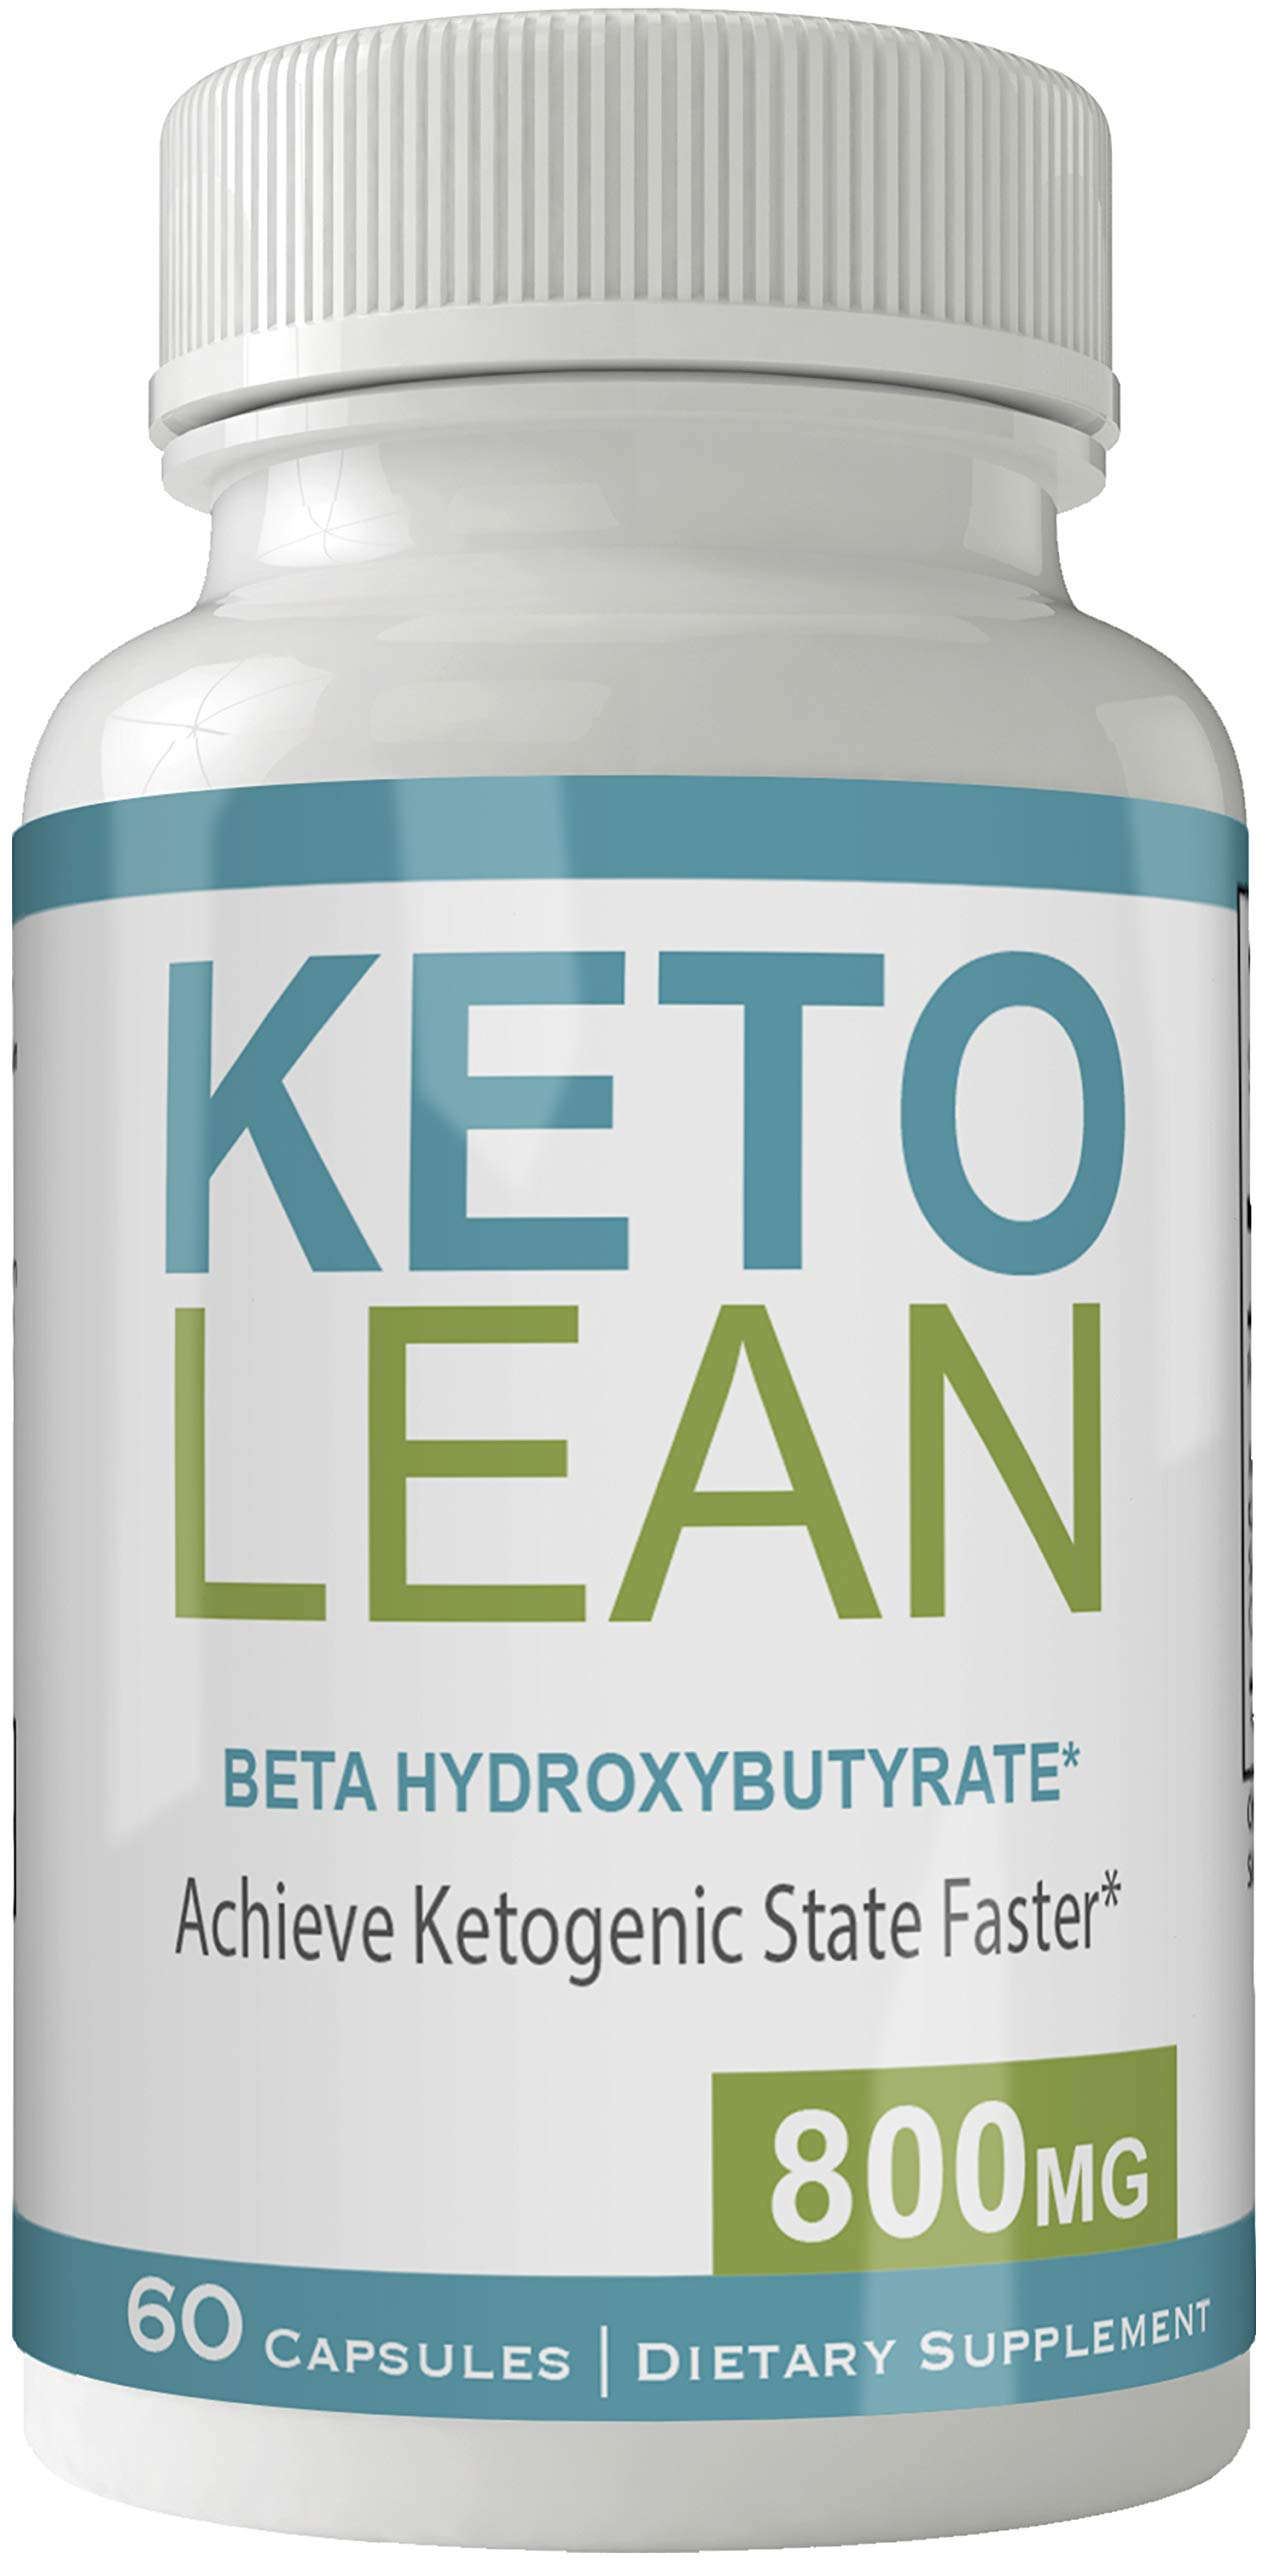 Keto Lean Pills Advance Weight Loss Supplement Appetite Suppressant Natural Ketogenic 800 mg Formula with BHB Salts Ketone Diet Capsules to Boost Metabolism, Energy and Focus